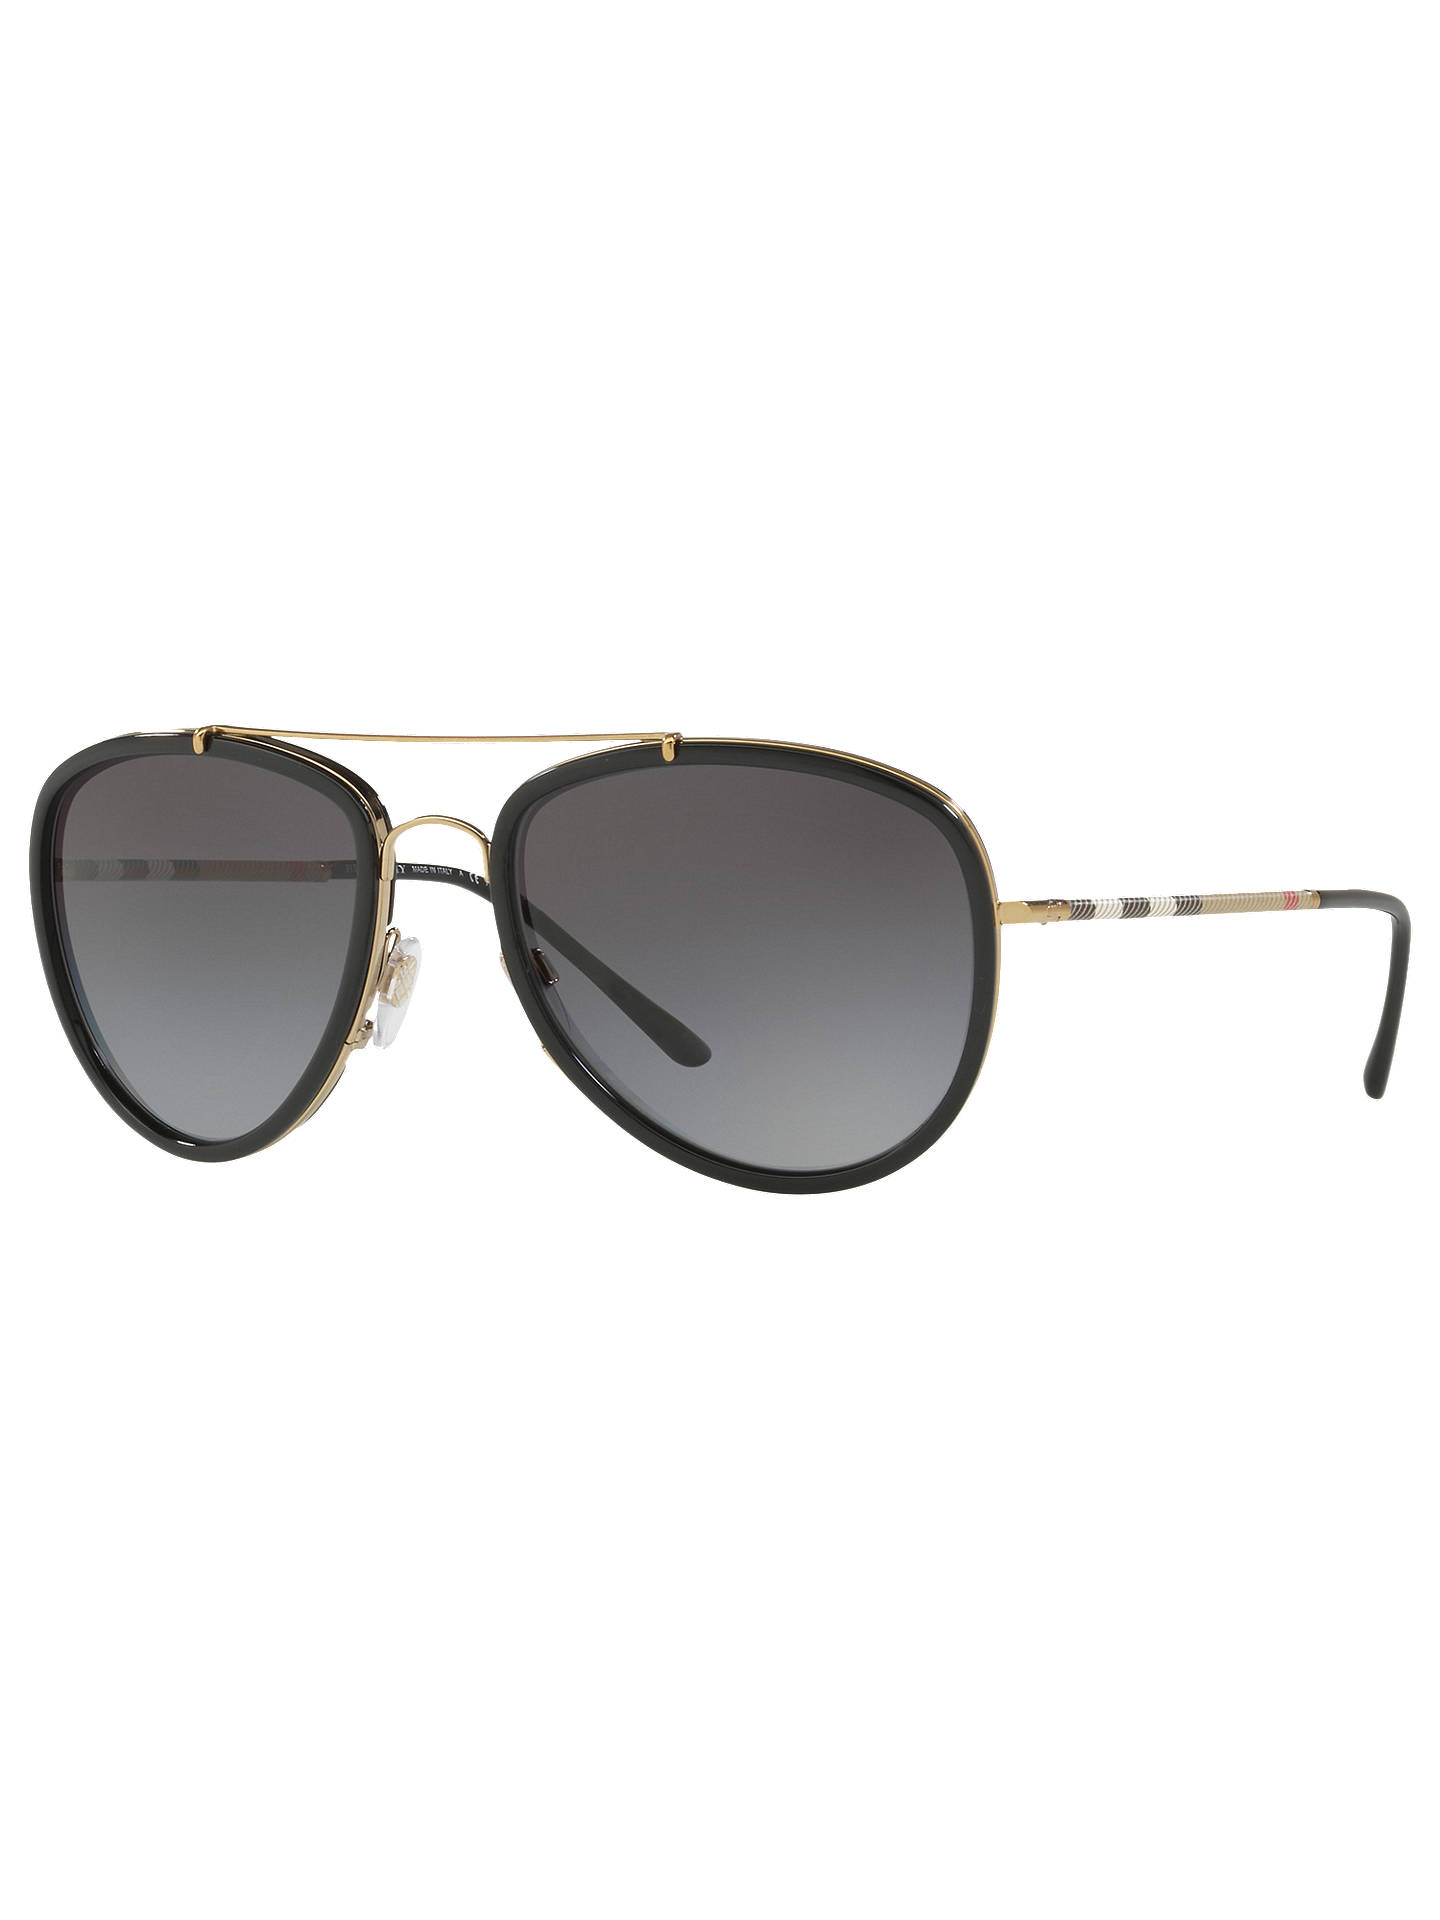 0e7919fca2c BuyBurberry BE3090 Polarised Aviator Sunglasses